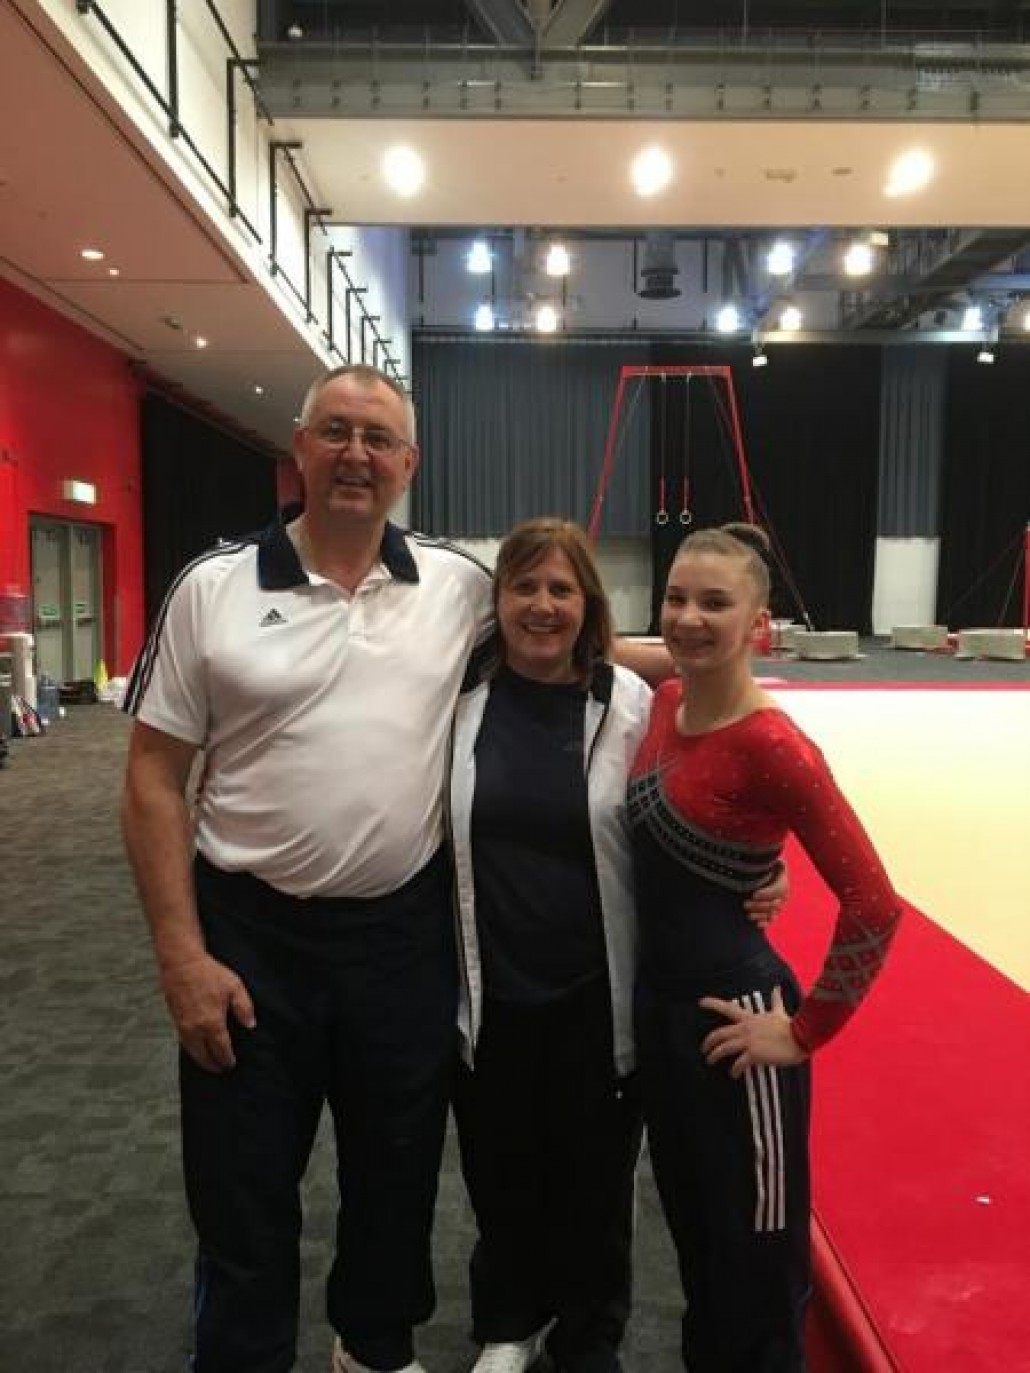 Kelly with Coaches, Keith and Debbie Richardson